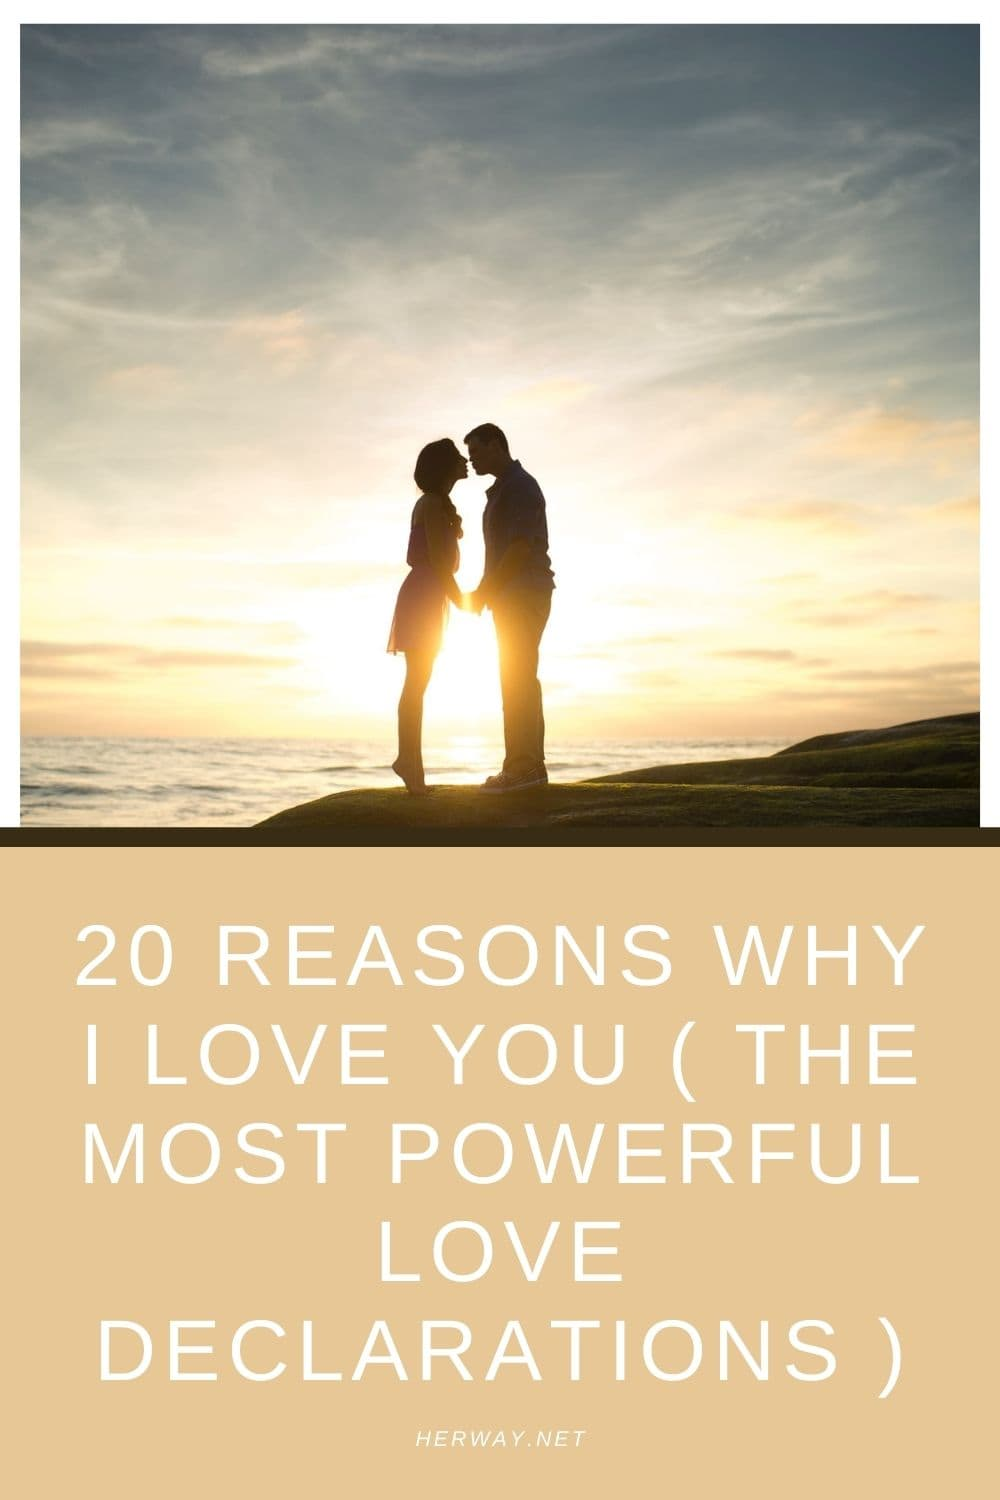 20 Reasons Why I Love You ( The Most Powerful Love Declarations )